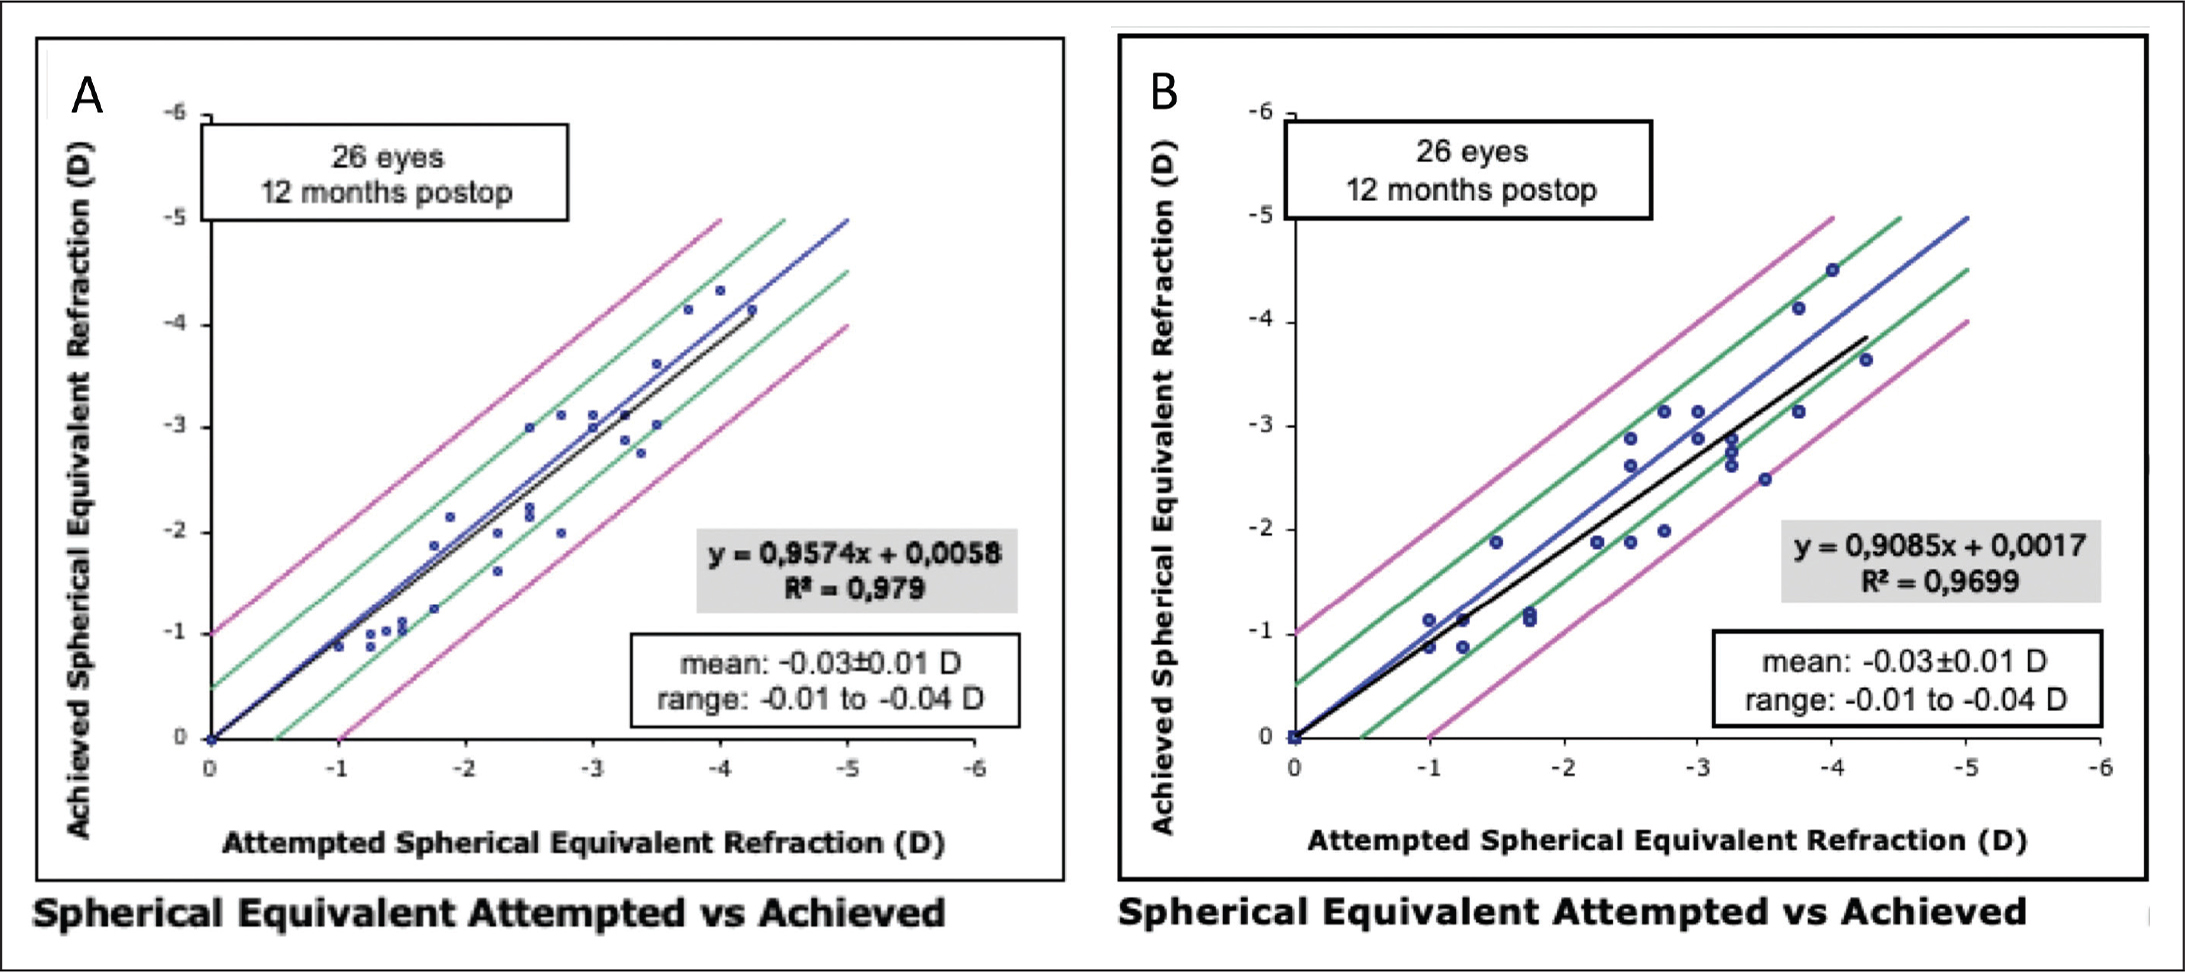 Attempted versus achieved change in manifest refraction spherical equivalent at 12 months in the (A) topography-guided customized ablation treatment (TCAT) and (B) wavefront-optimized (WFO) groups. D = diopters